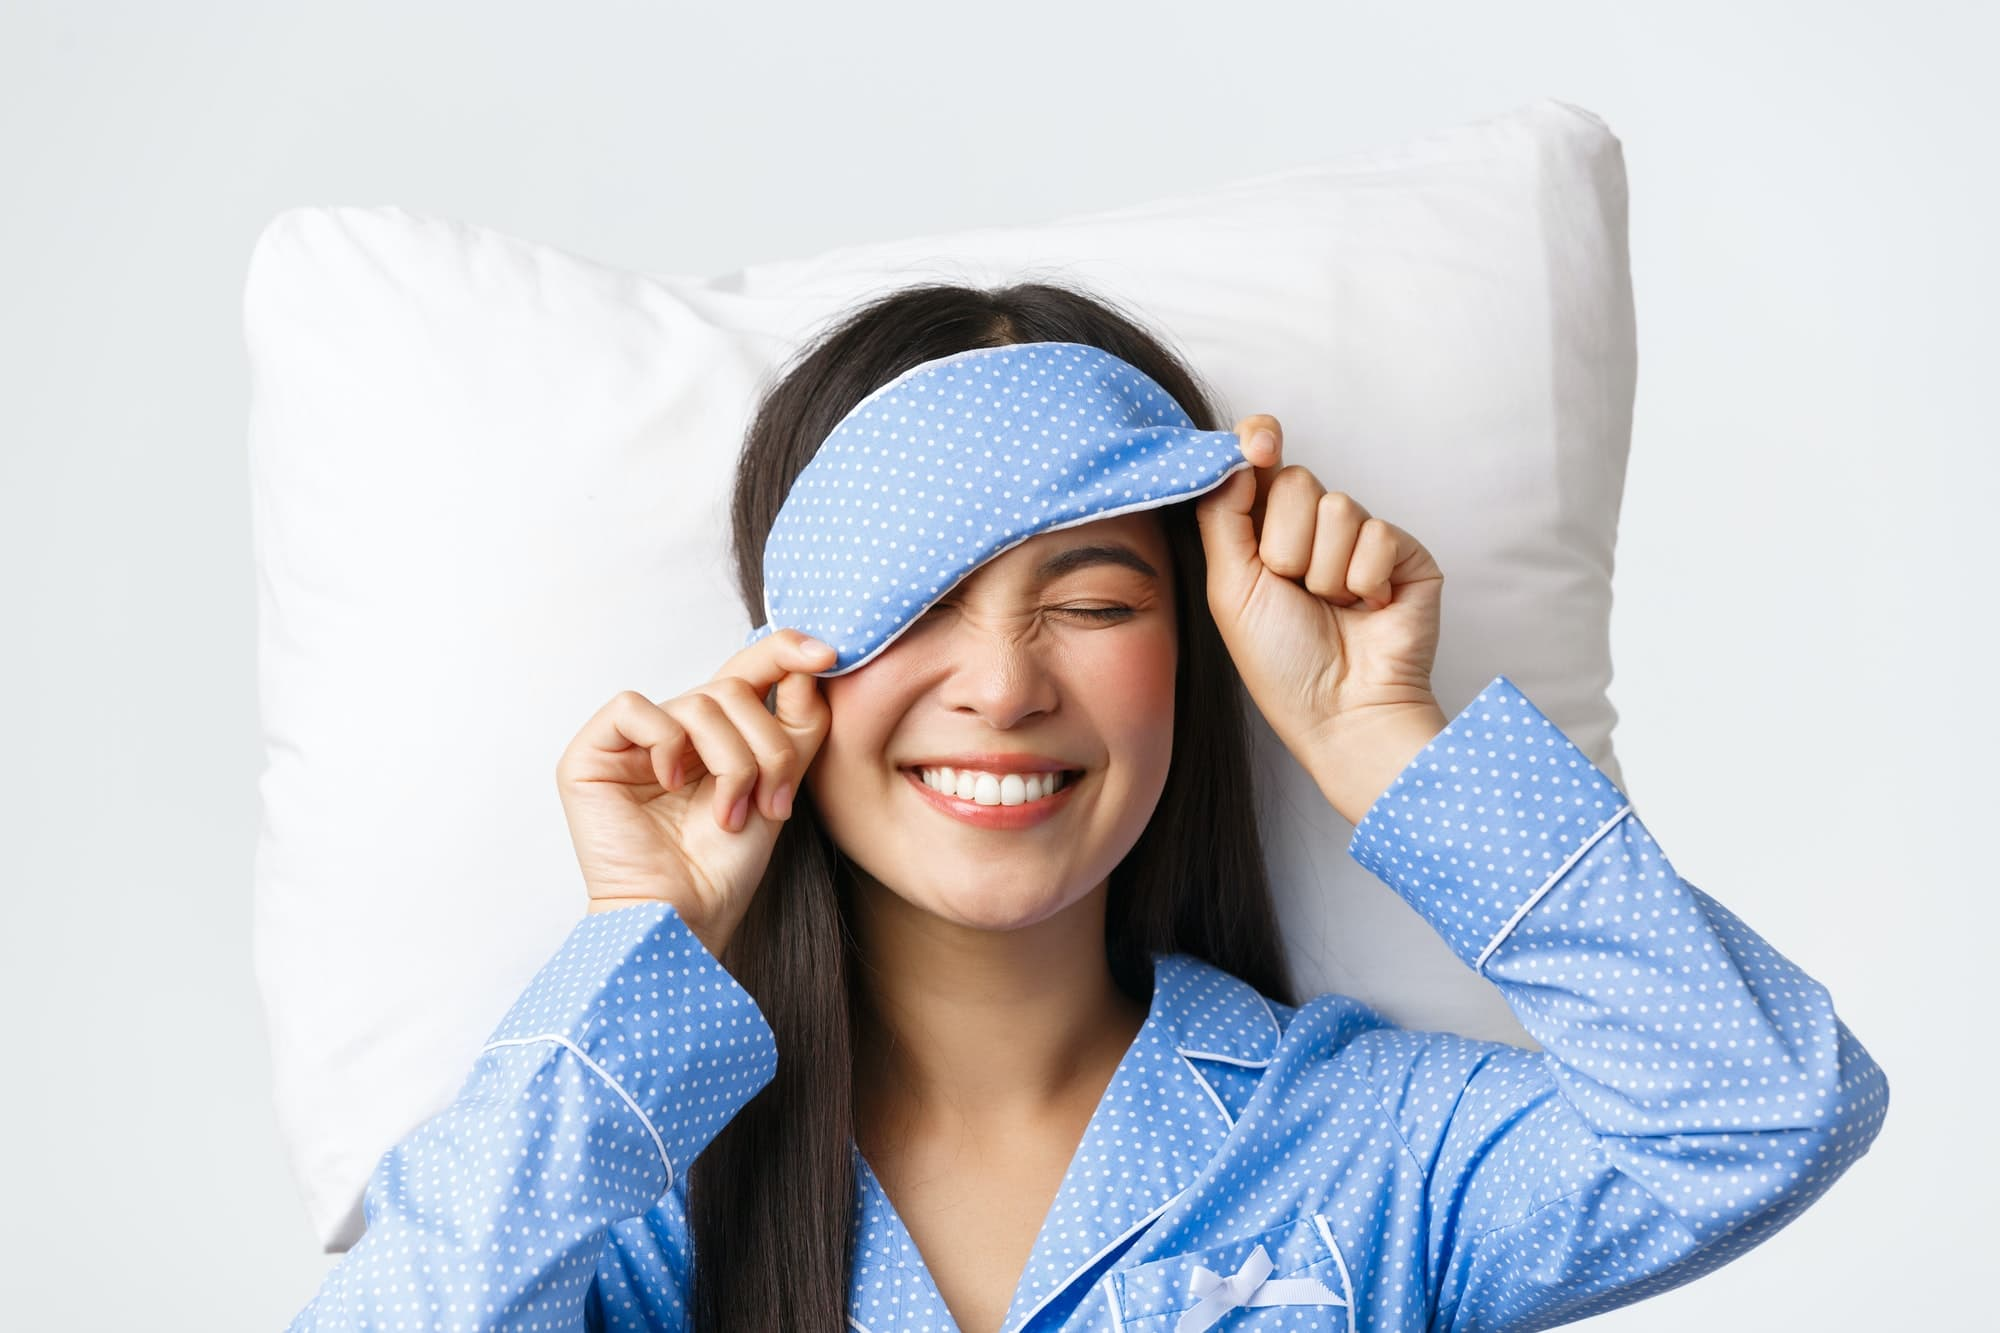 Pleased happy smiling korean girl in blue pajamas and sleeping mask, had great day going bed in